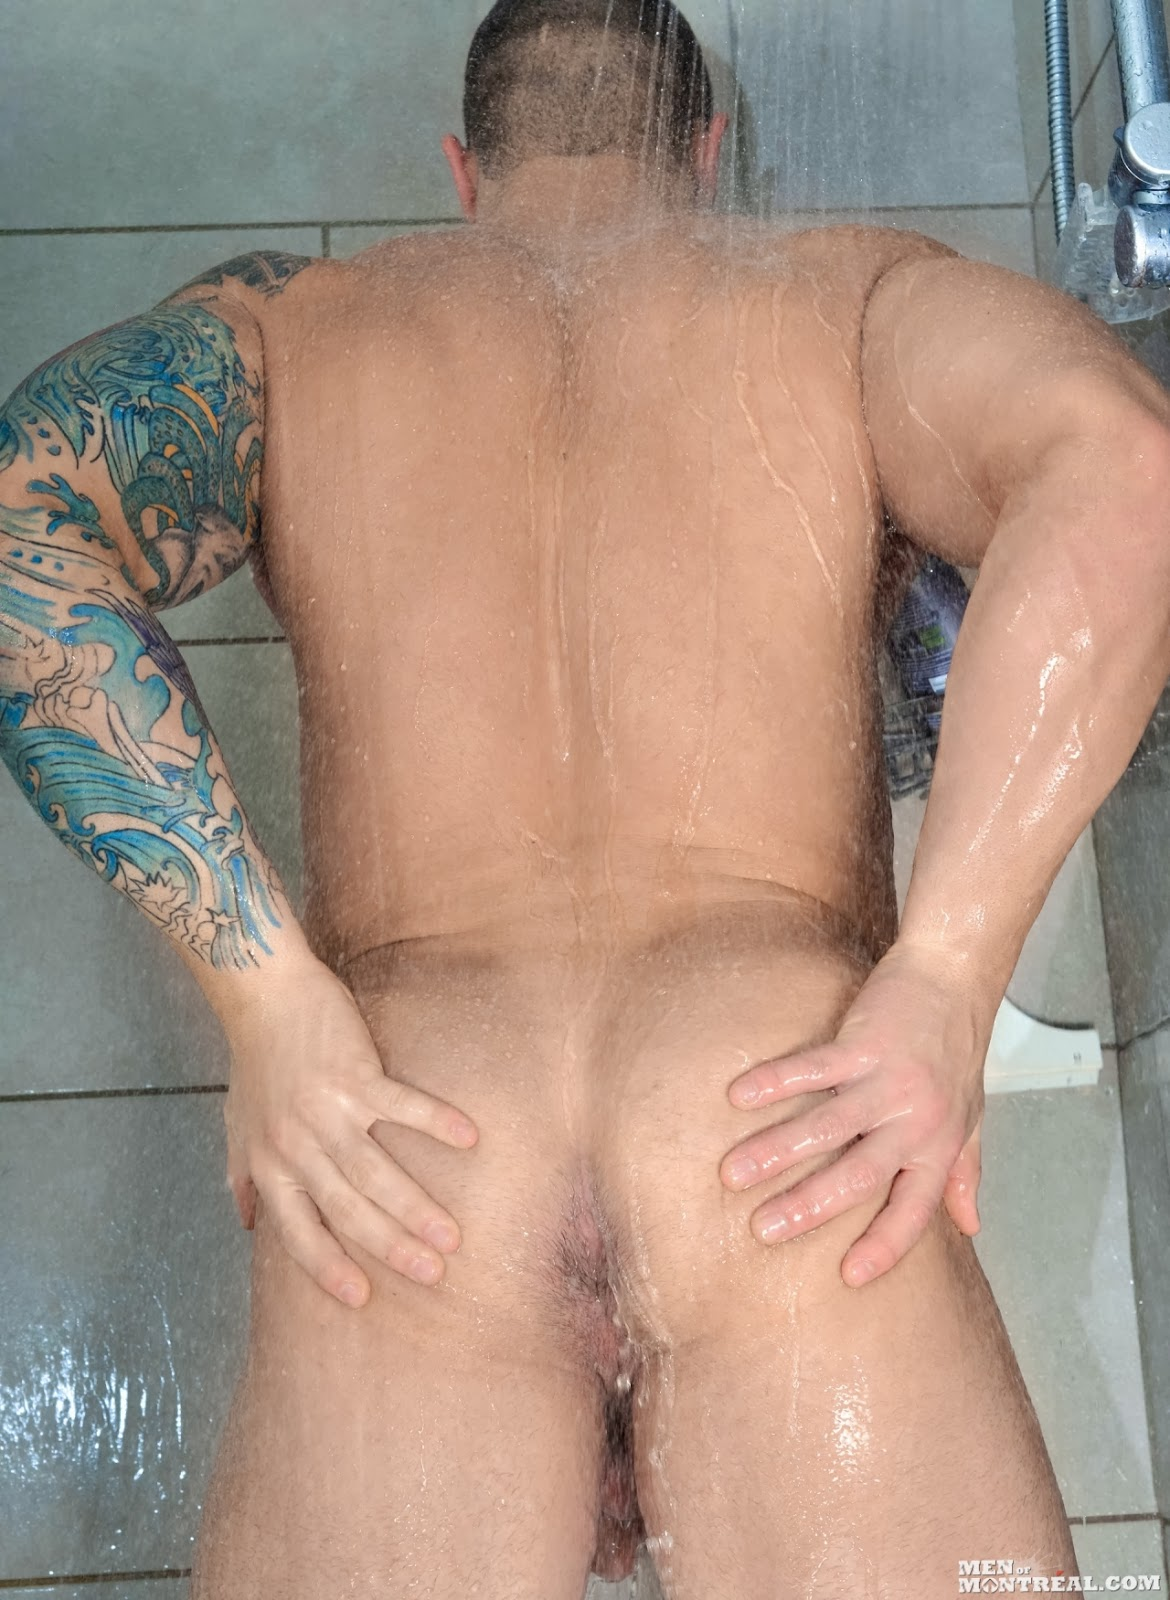 two gay men in shower